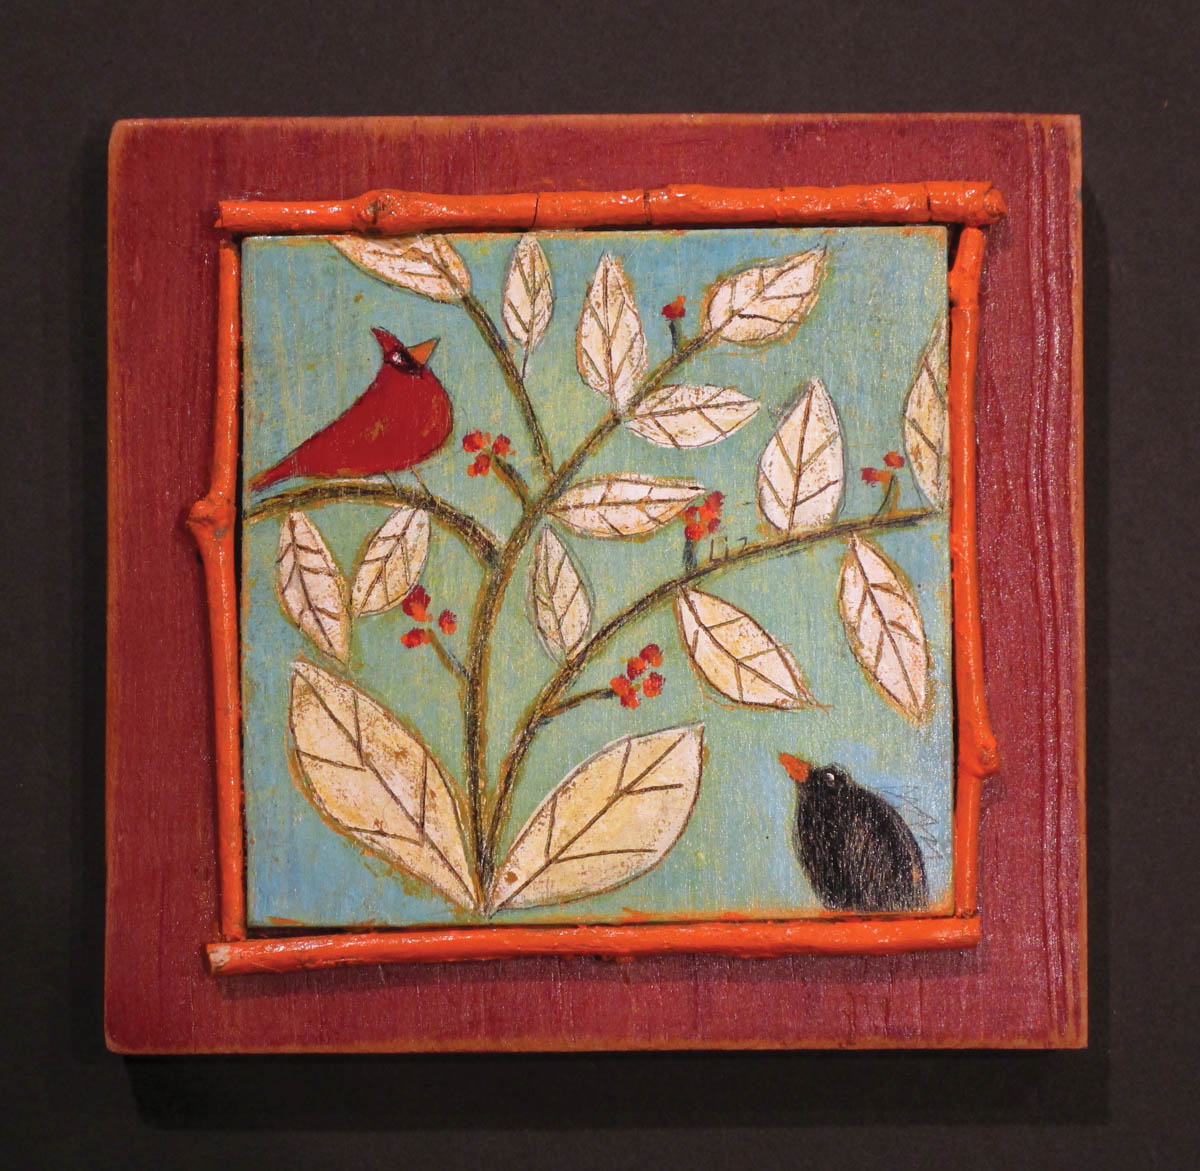 Small Masterpieces on Display at AMERICAN FOLK ART